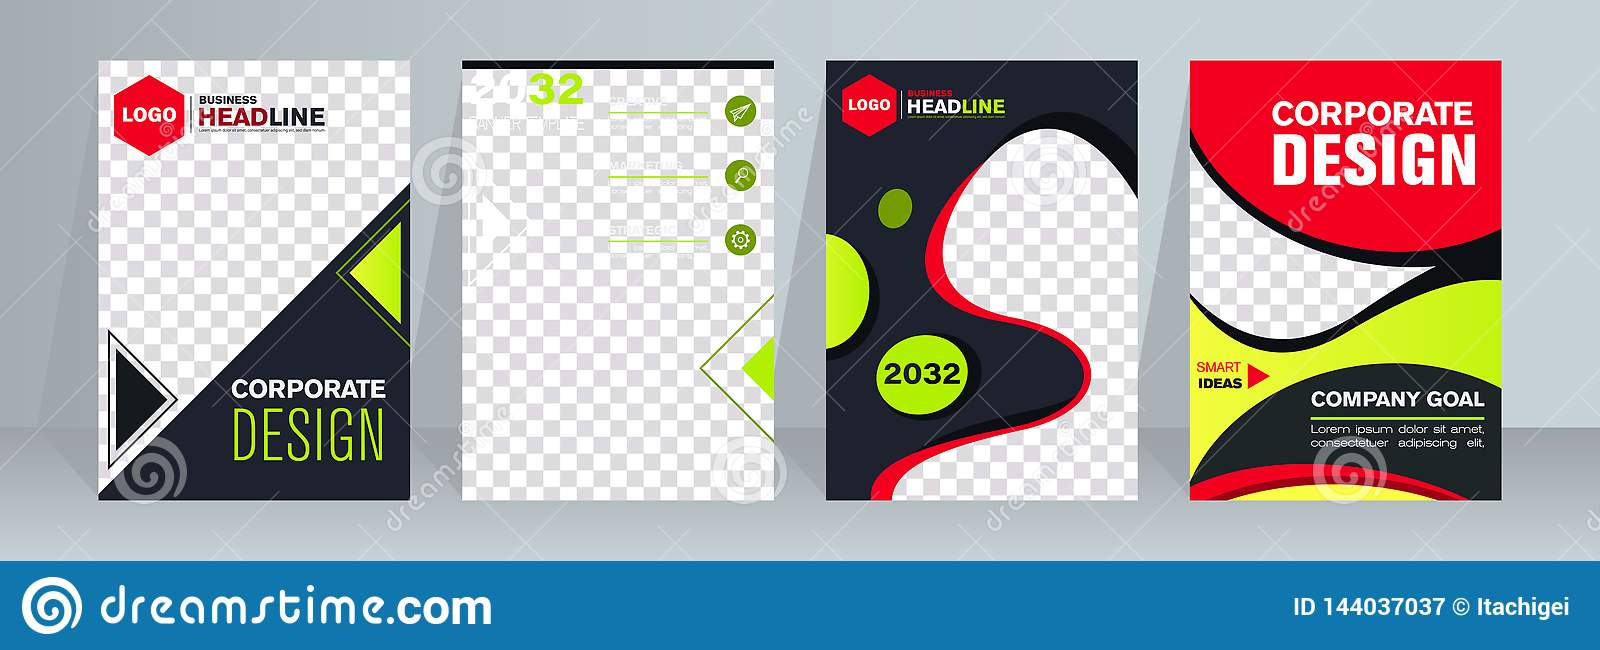 Design Web banners of different standard sizes. Templates with round place for photos, buttons. Vector illustration.